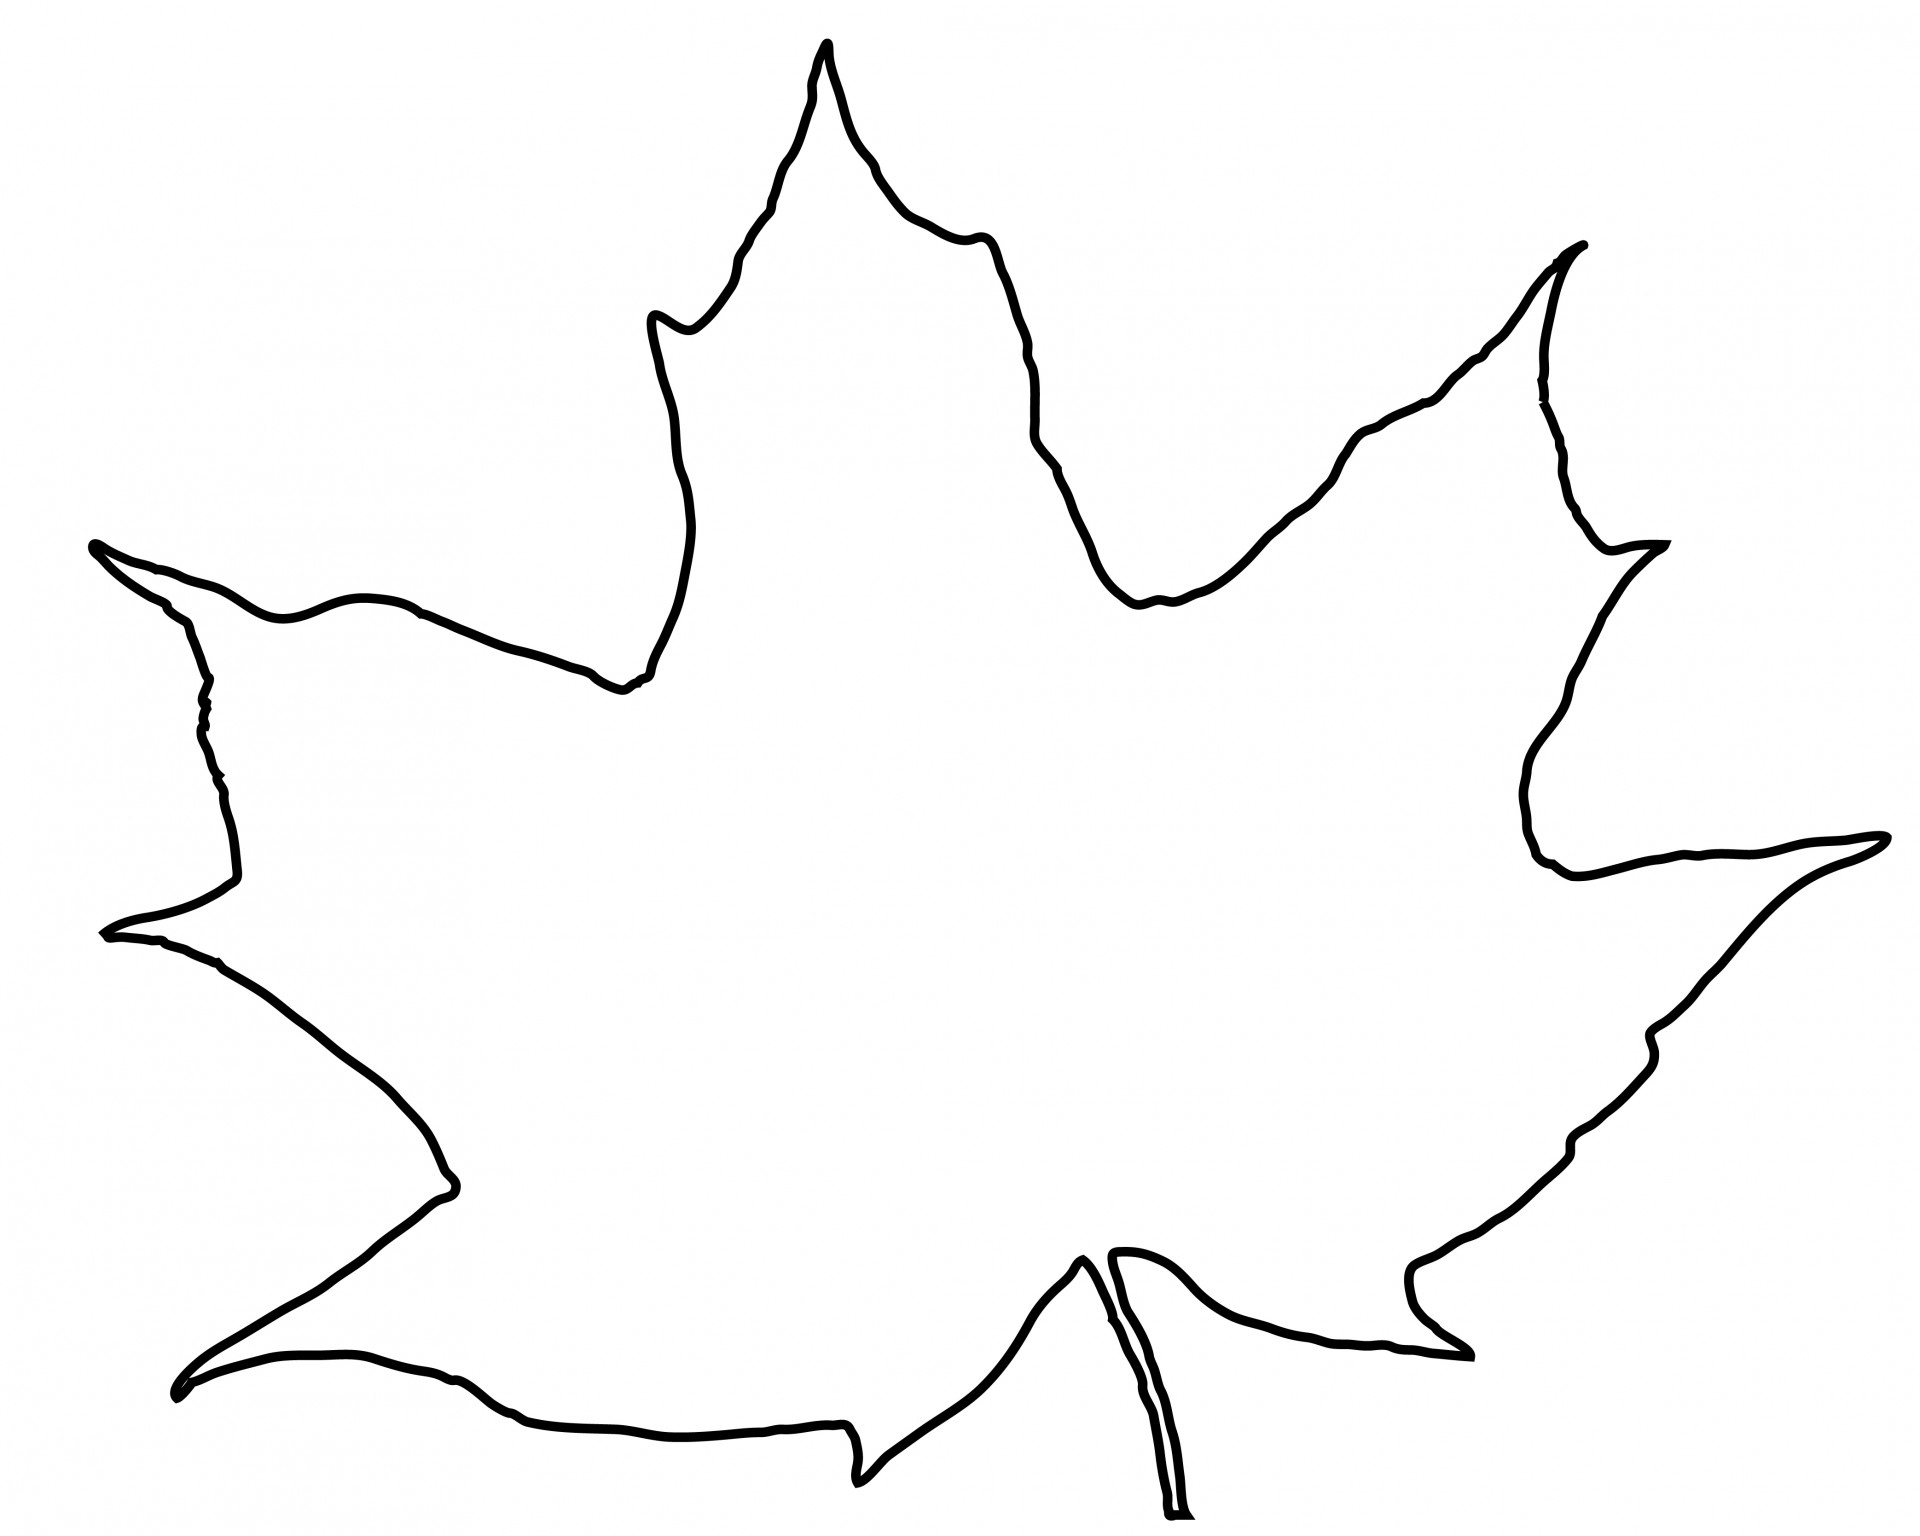 6 Leaf Outline Images